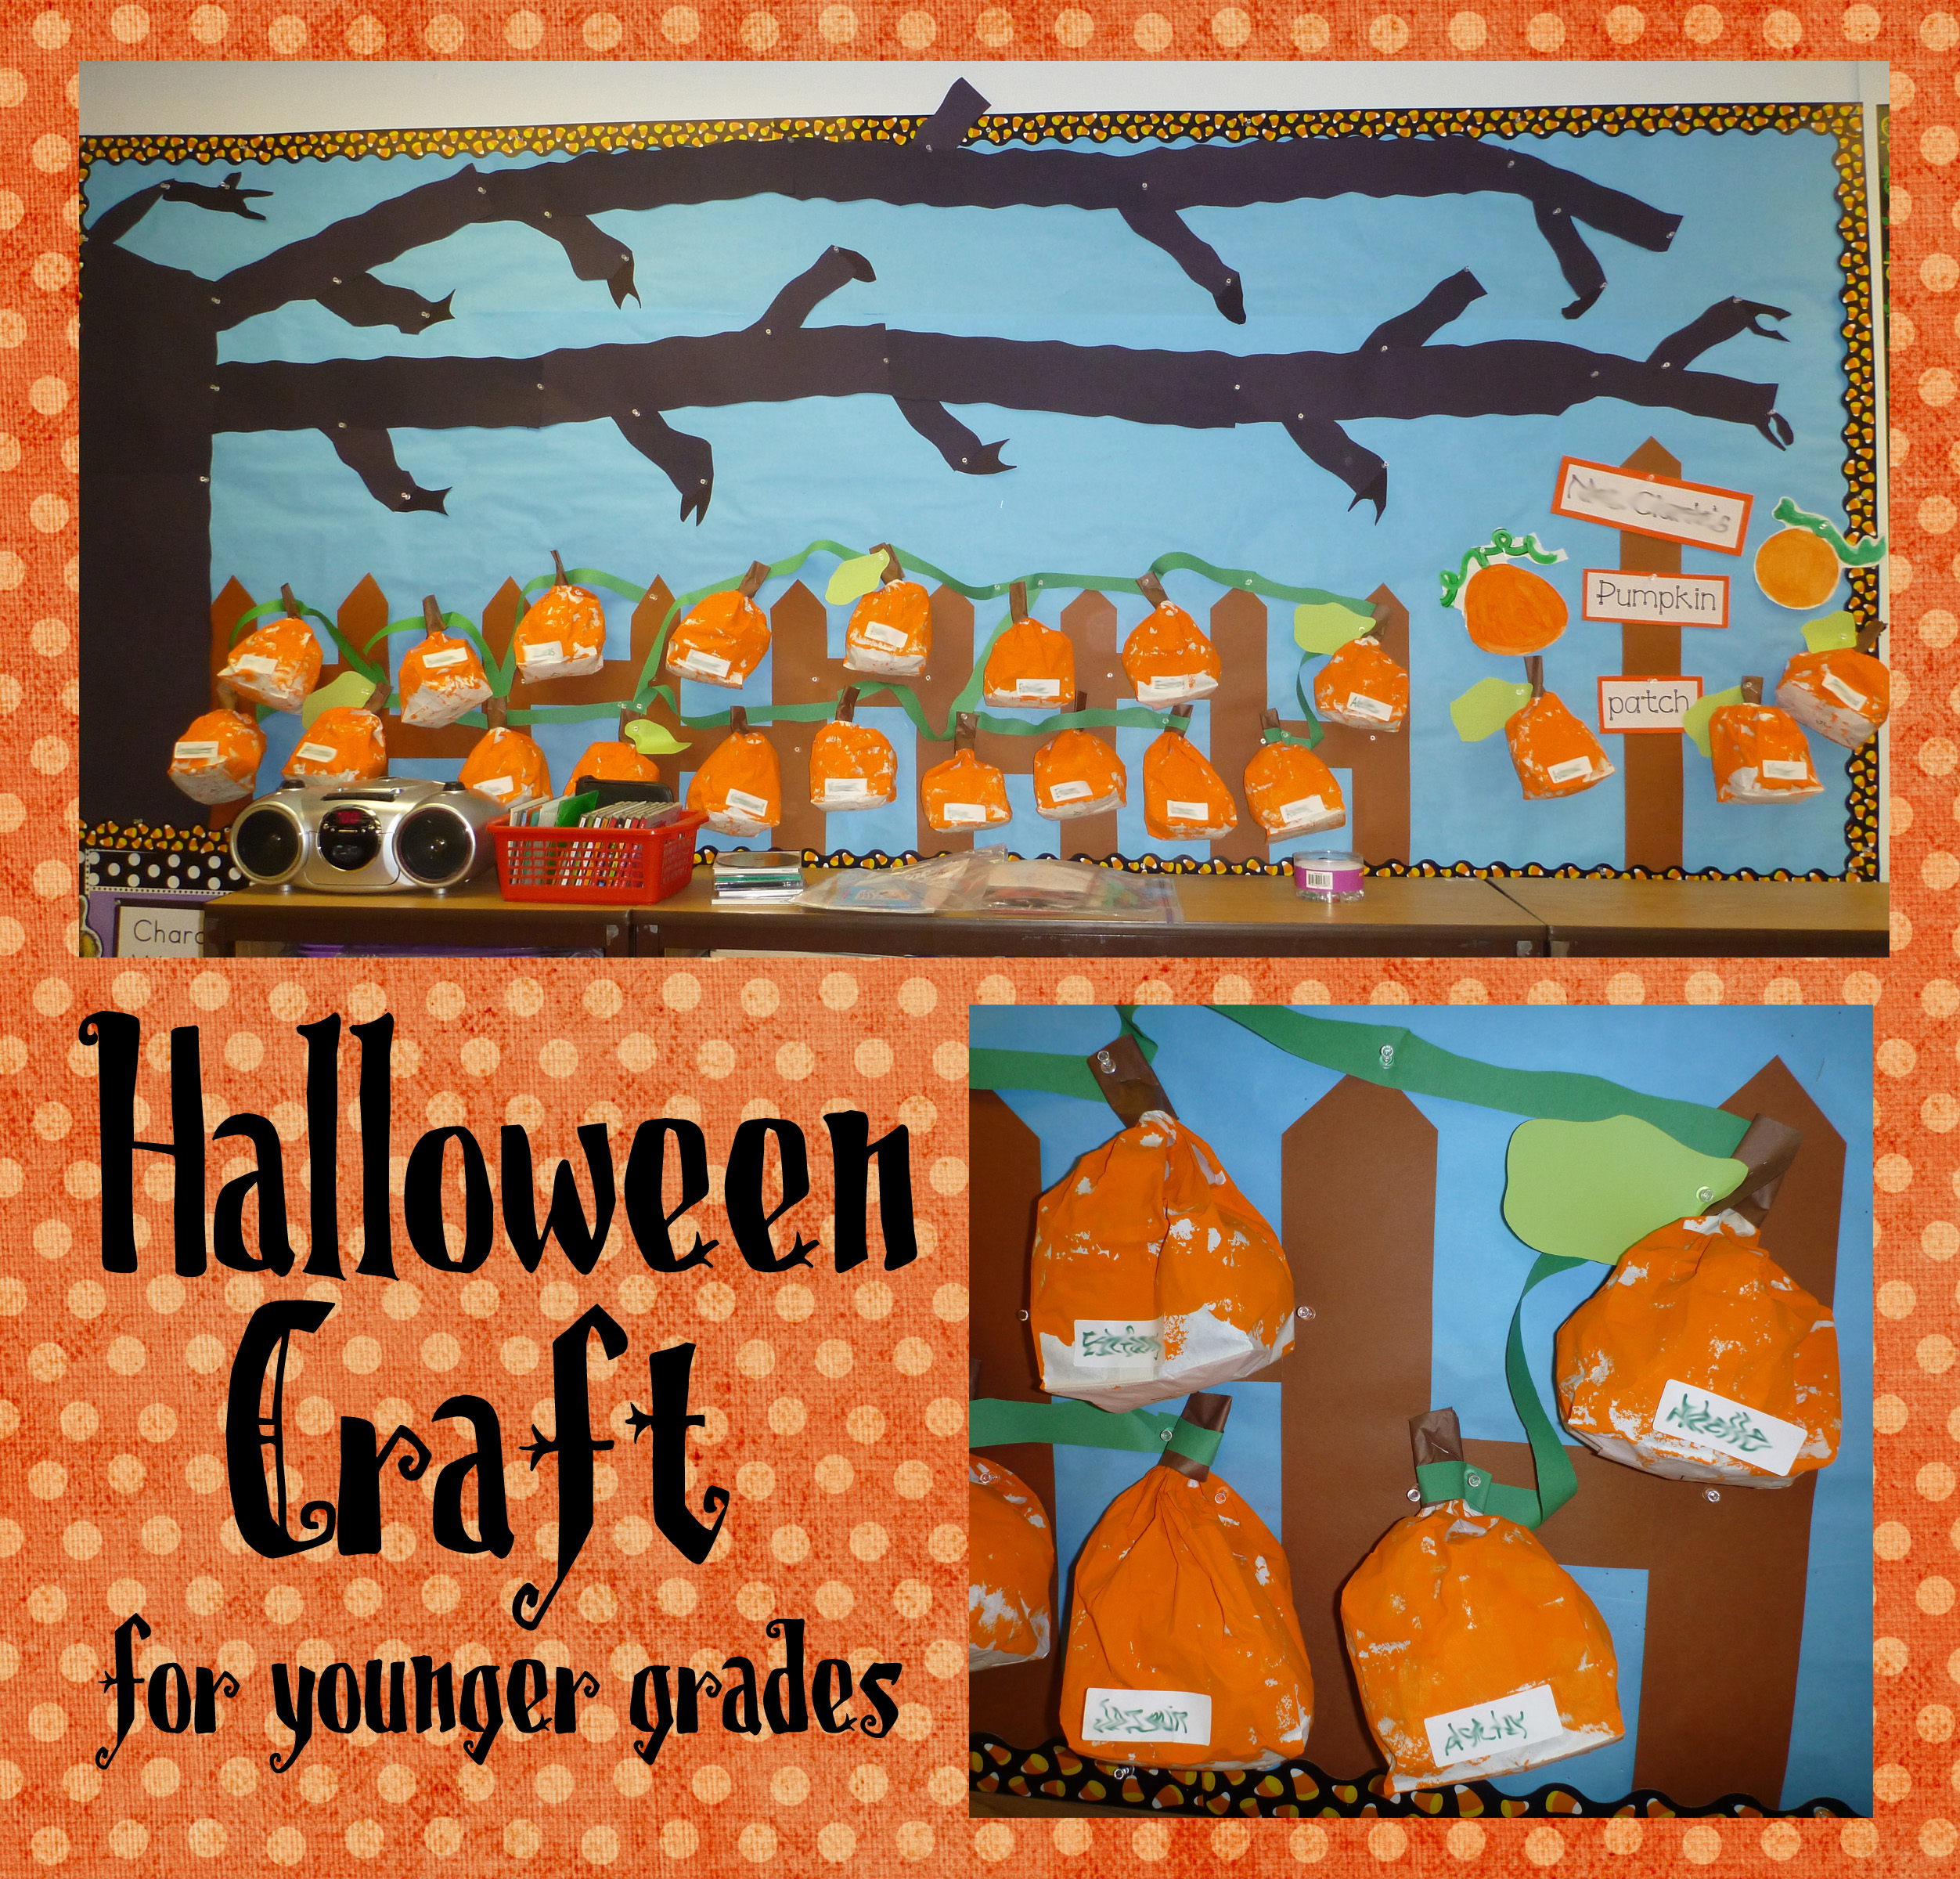 halloween craft: paper bag pumpkins for younger grades | squarehead